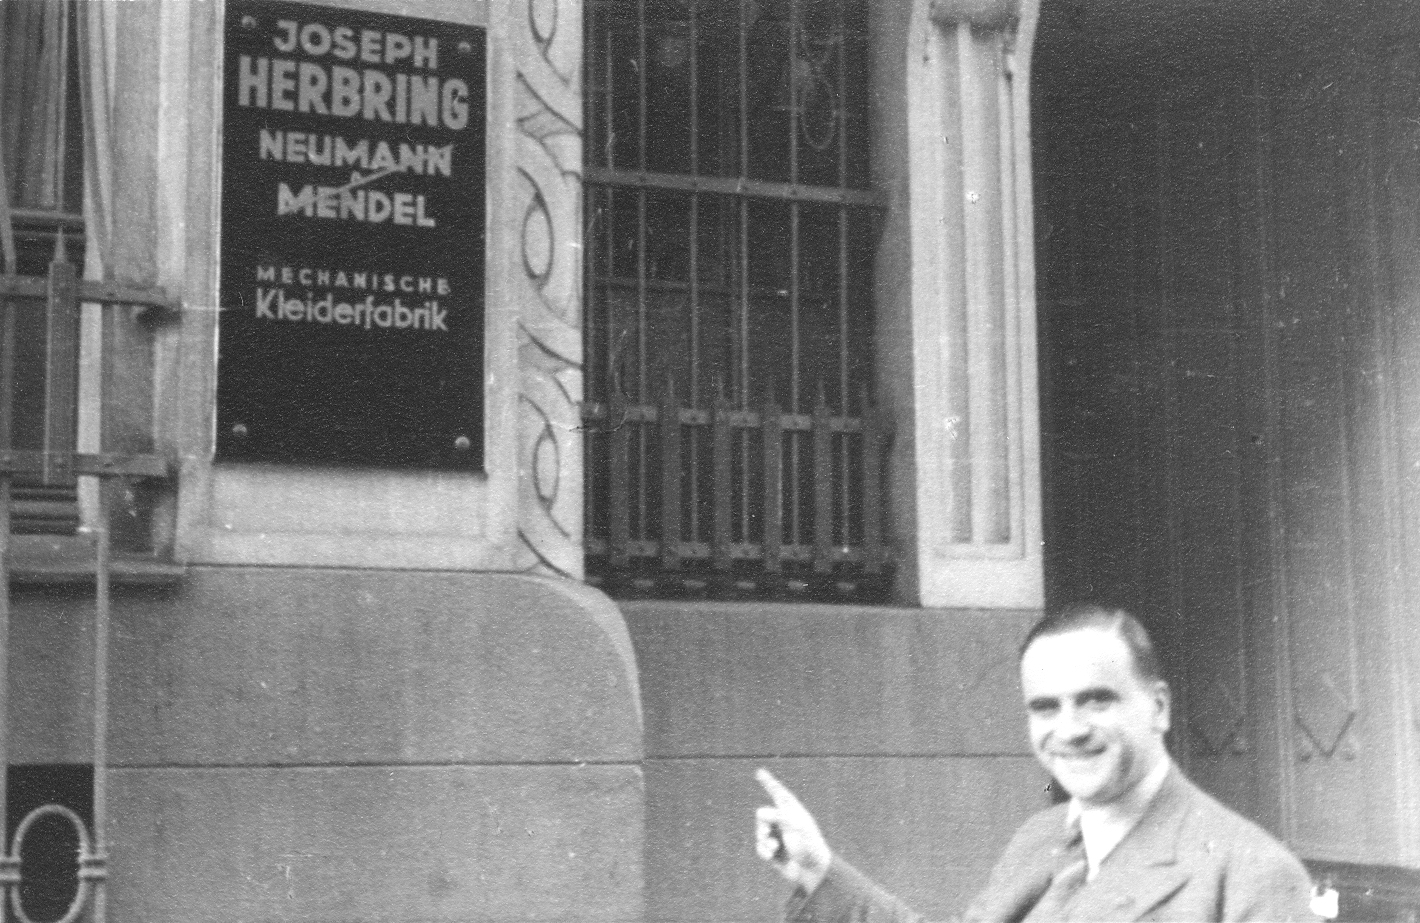 Ludwig Neumann pointing to the sign at the entrance of the Josep Herring textil factory, former Neumann & Mendel's. © Wiener Library Photo Collection